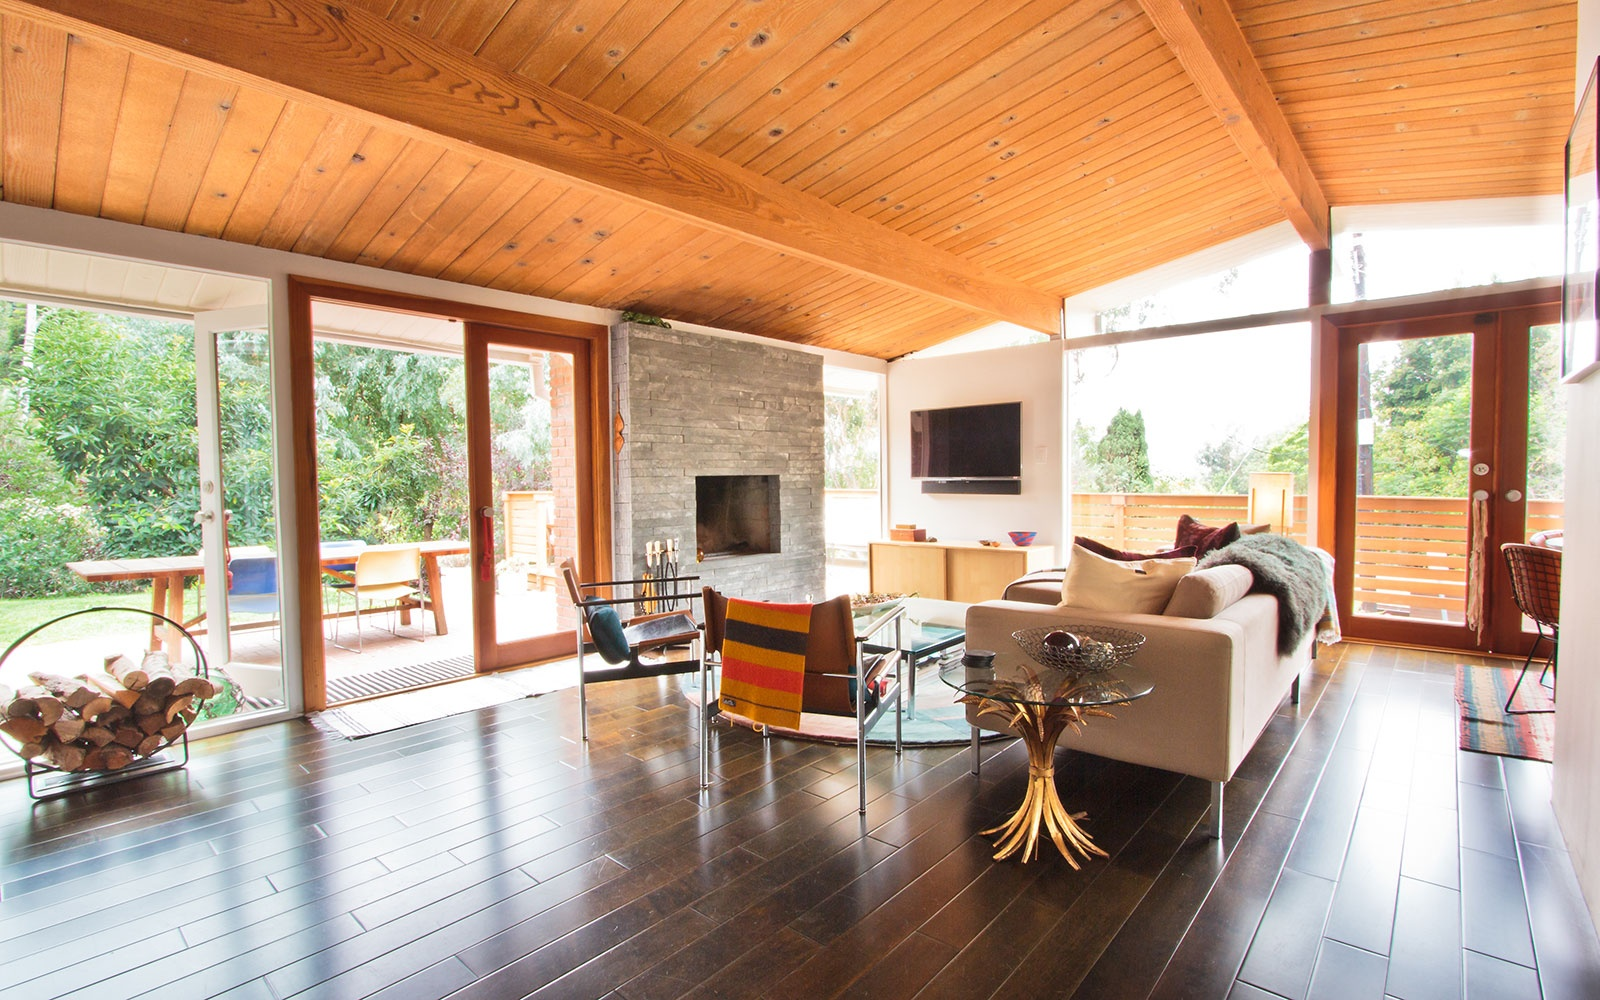 Midcentury Post-and-Beam by Val Powelson